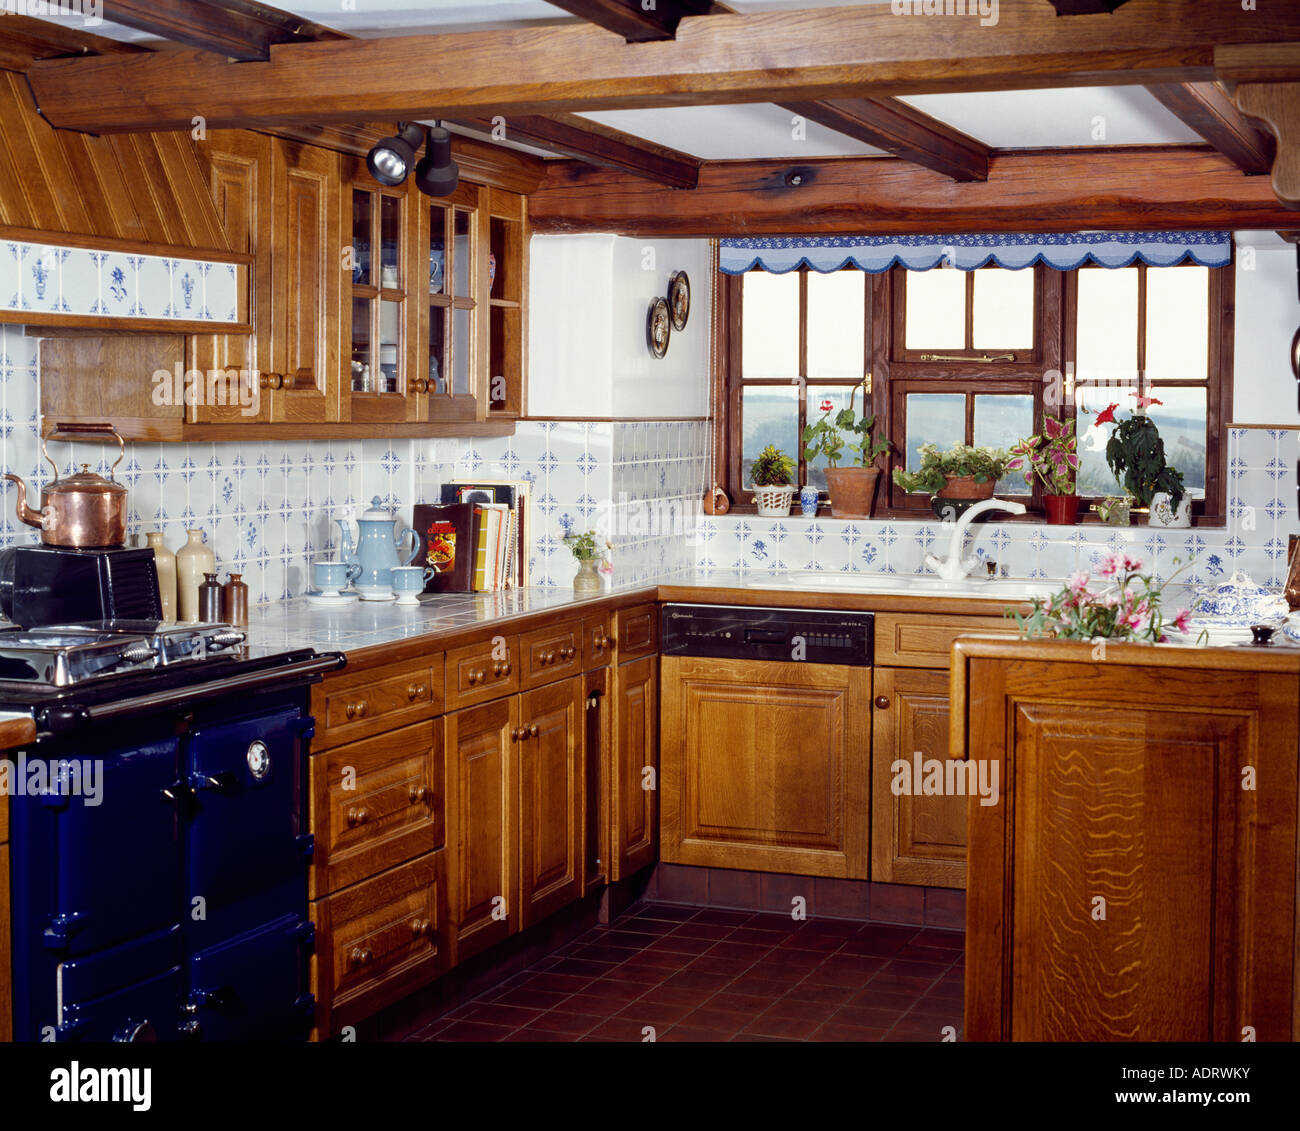 blue and white kitchen wall tiles country kitchen with wooden cupboards and blue and white 9310